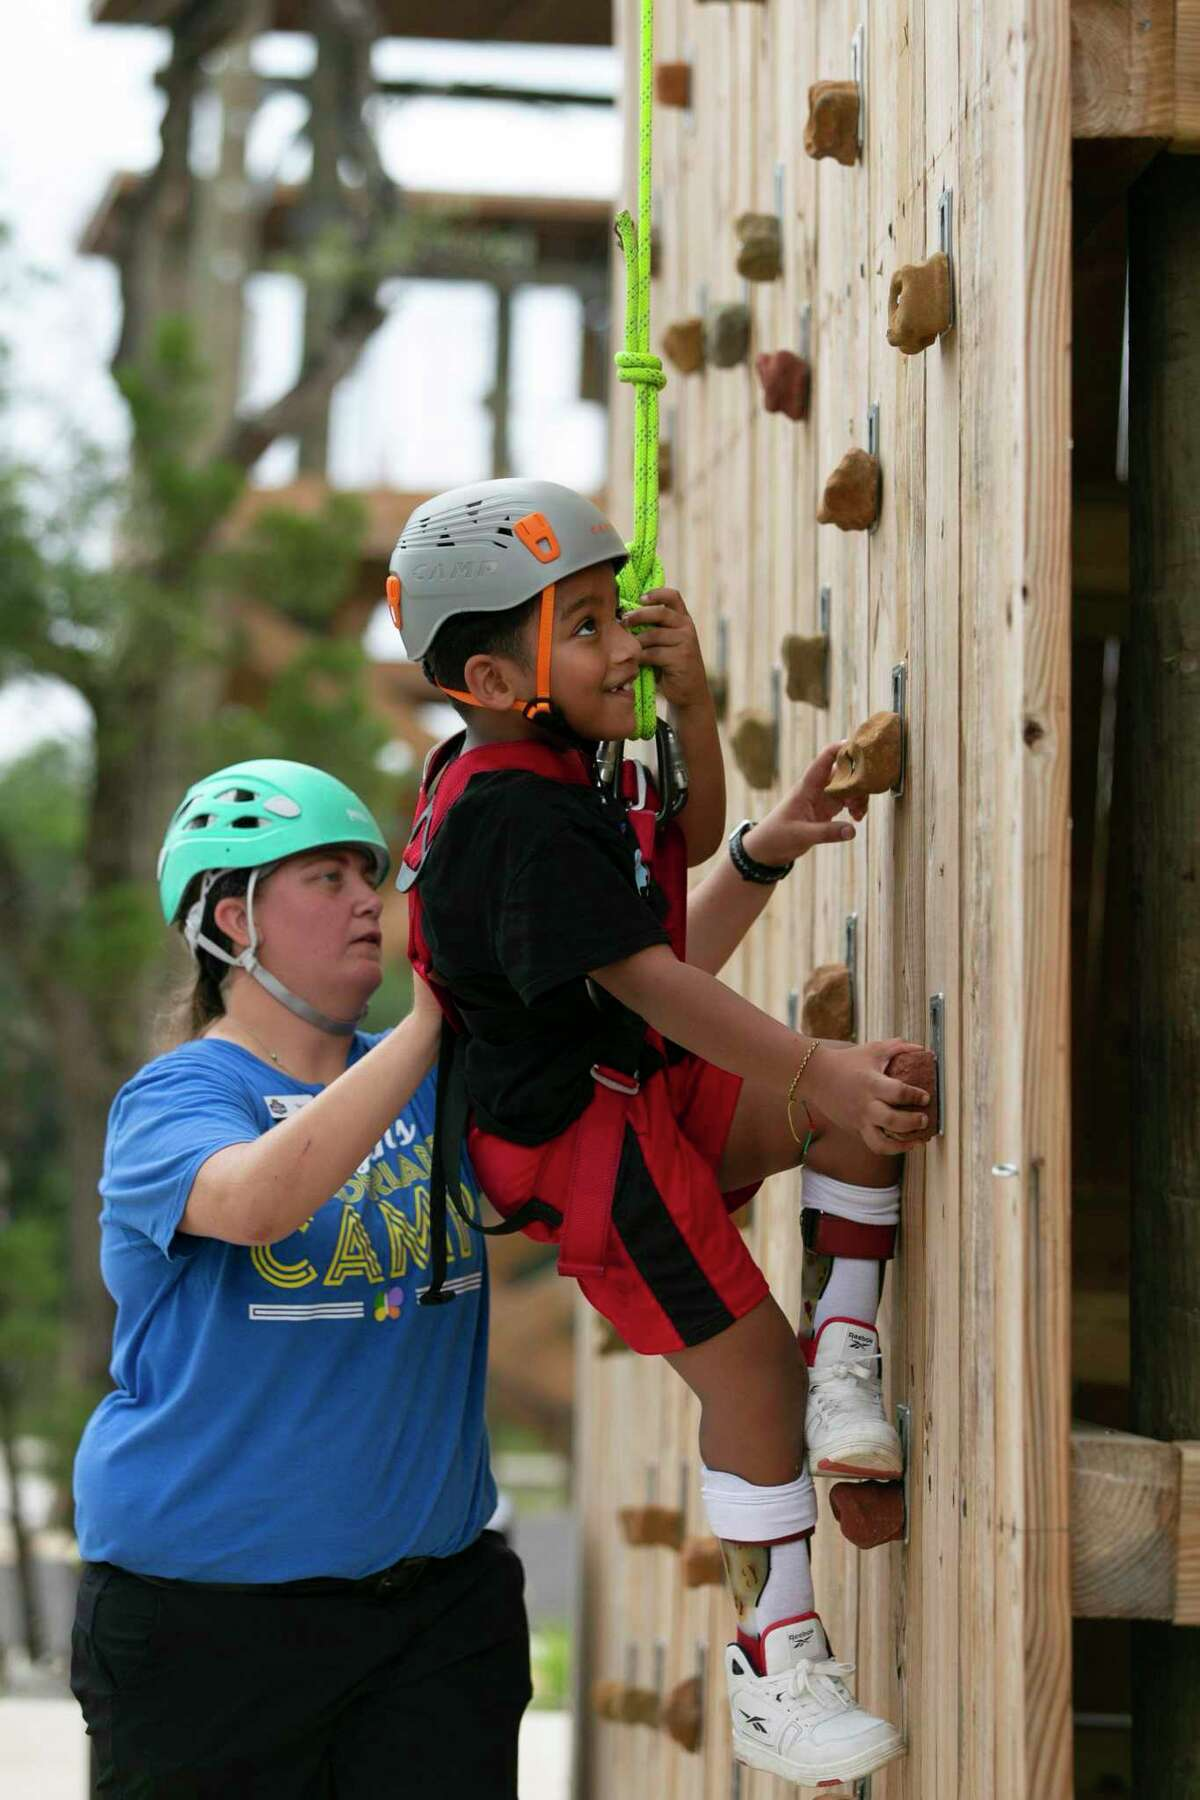 """Torye Gleitz assists 7-year-old Devyn Harrigan as he climbs up the rock wall on the Fort Challenge course inside Morgan's Wonderland Campground, located on the northern outskirts of San Antonio, on Tuesday. The campground was designed by Gordon and Maggie Hartman to be """"ultra-inclusive"""" and accessible to people with special needs."""